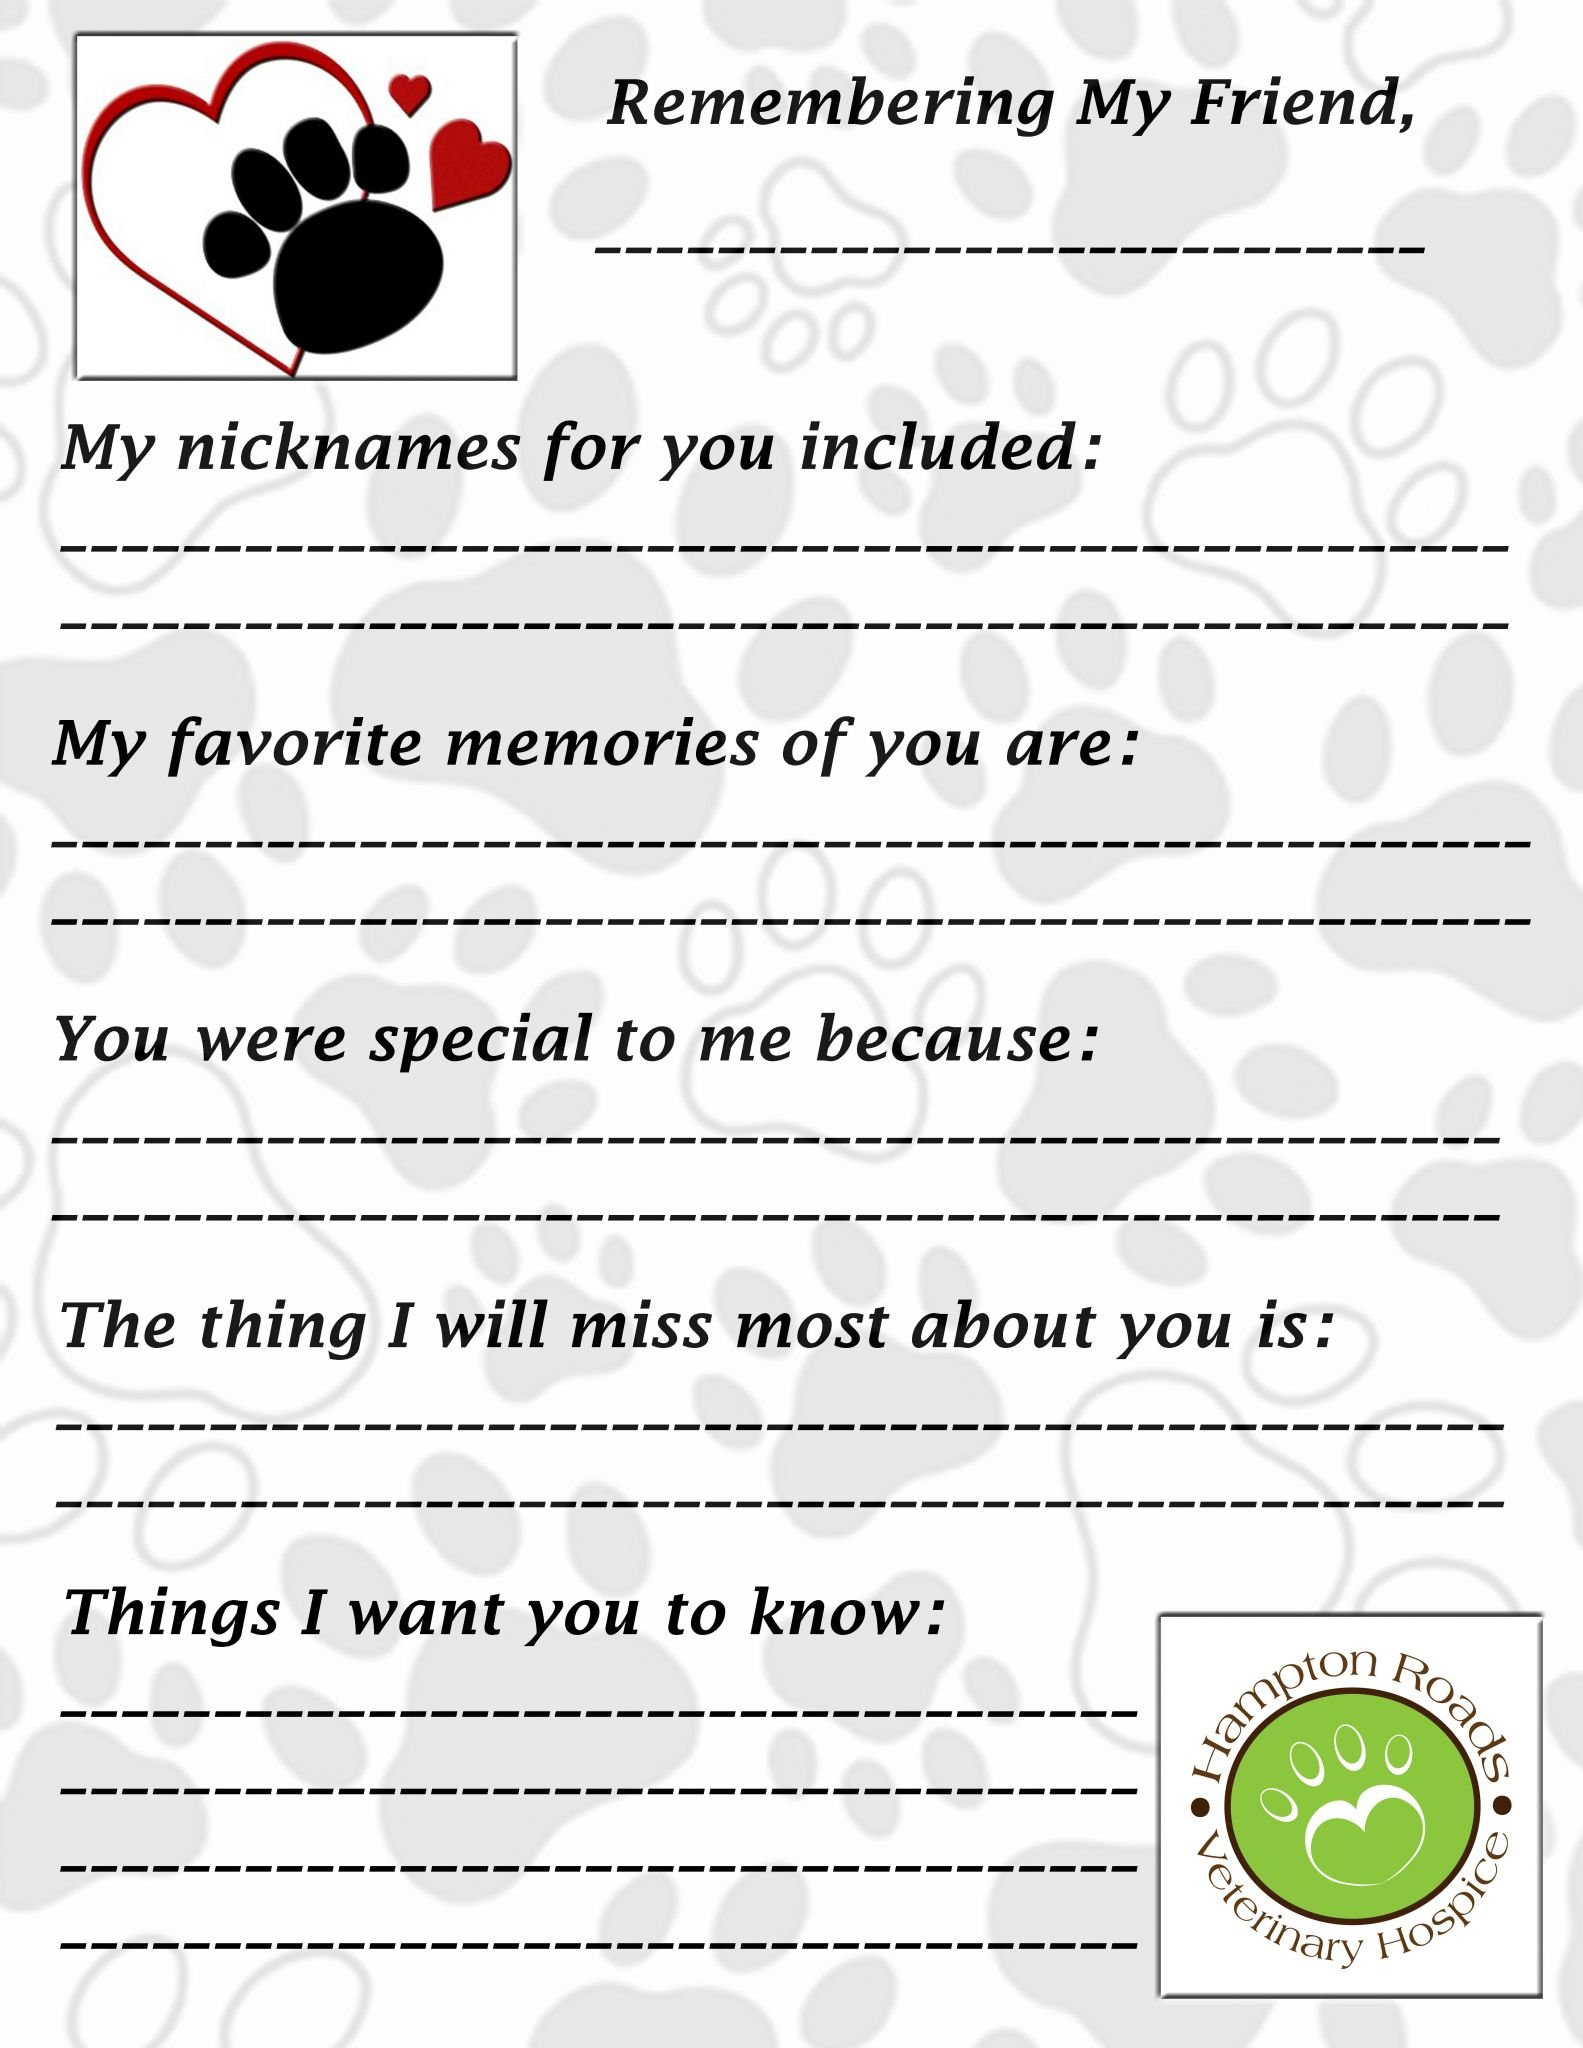 Grief And Loss Worksheets For Adults  Briefencounters Within Grief And Loss Worksheets For Adults